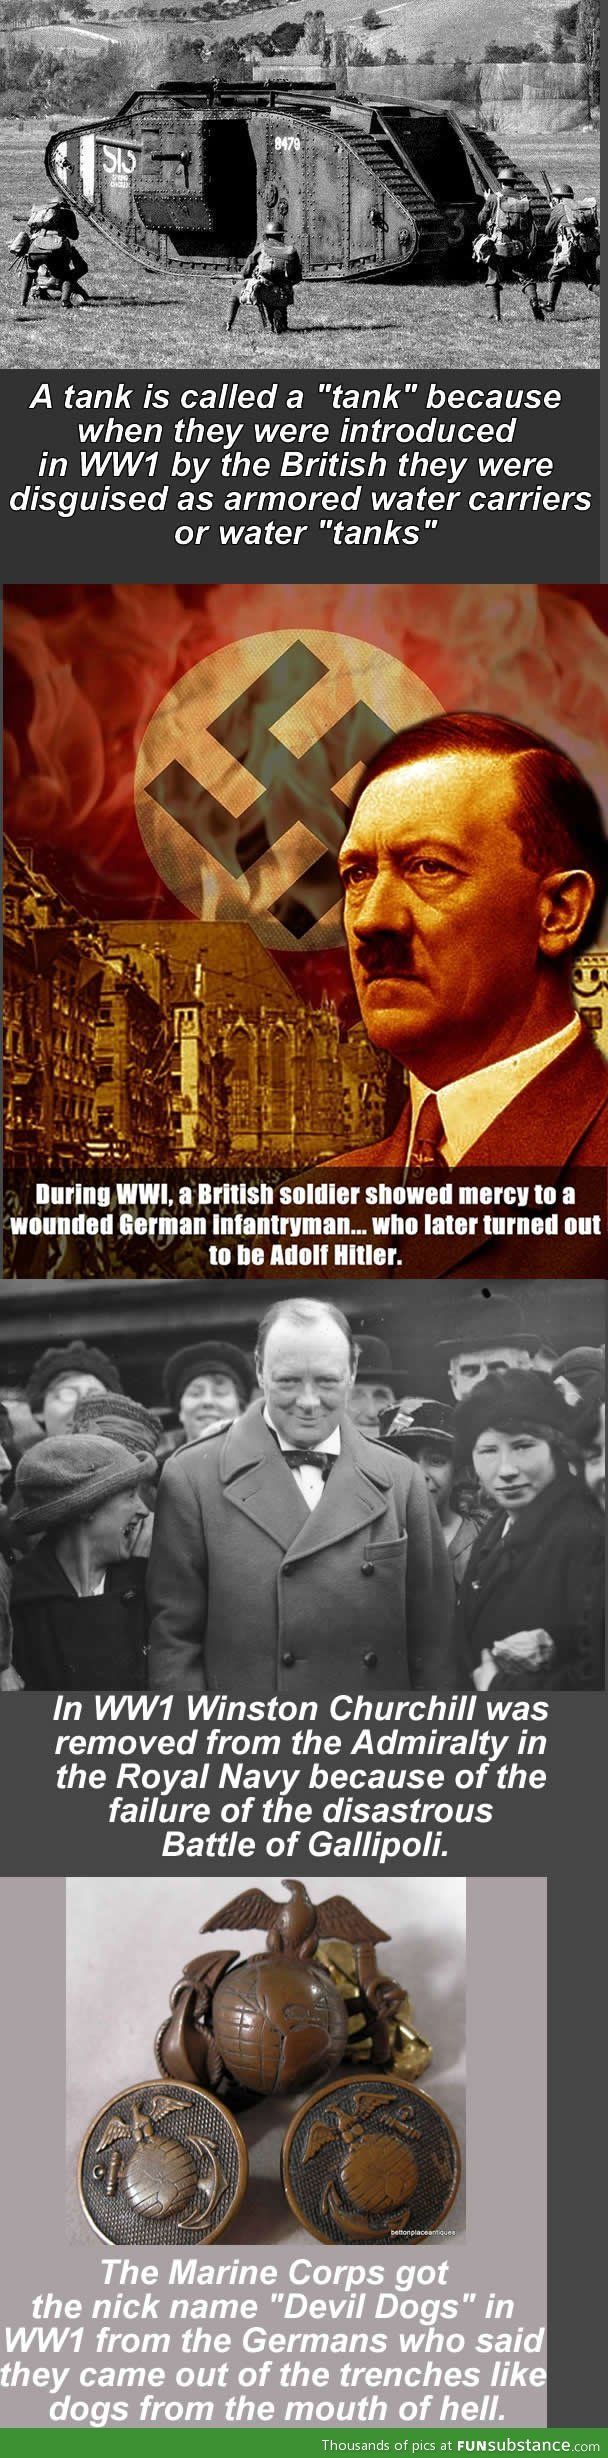 Random facts about WW1